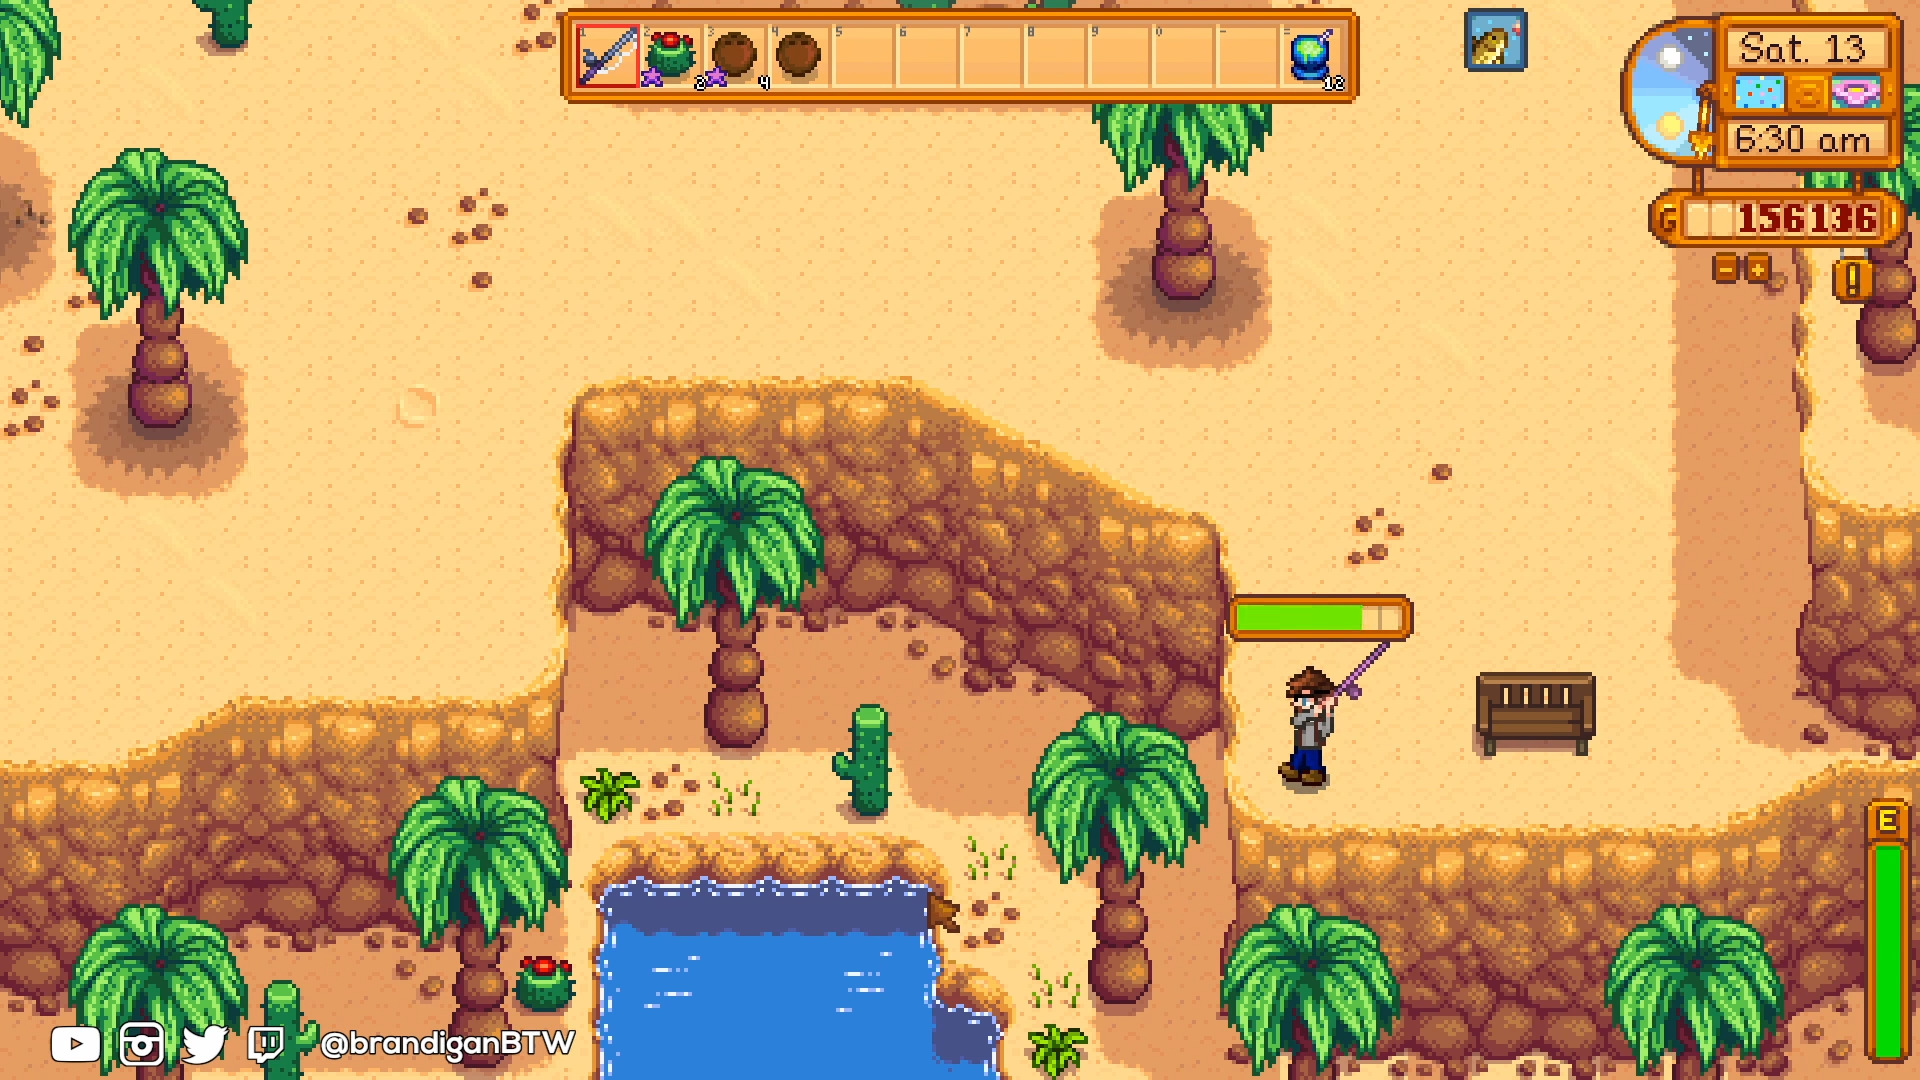 ConcernedApe Takes To Twitter, Updates Players On When To Expect Stardew Valley v1.5